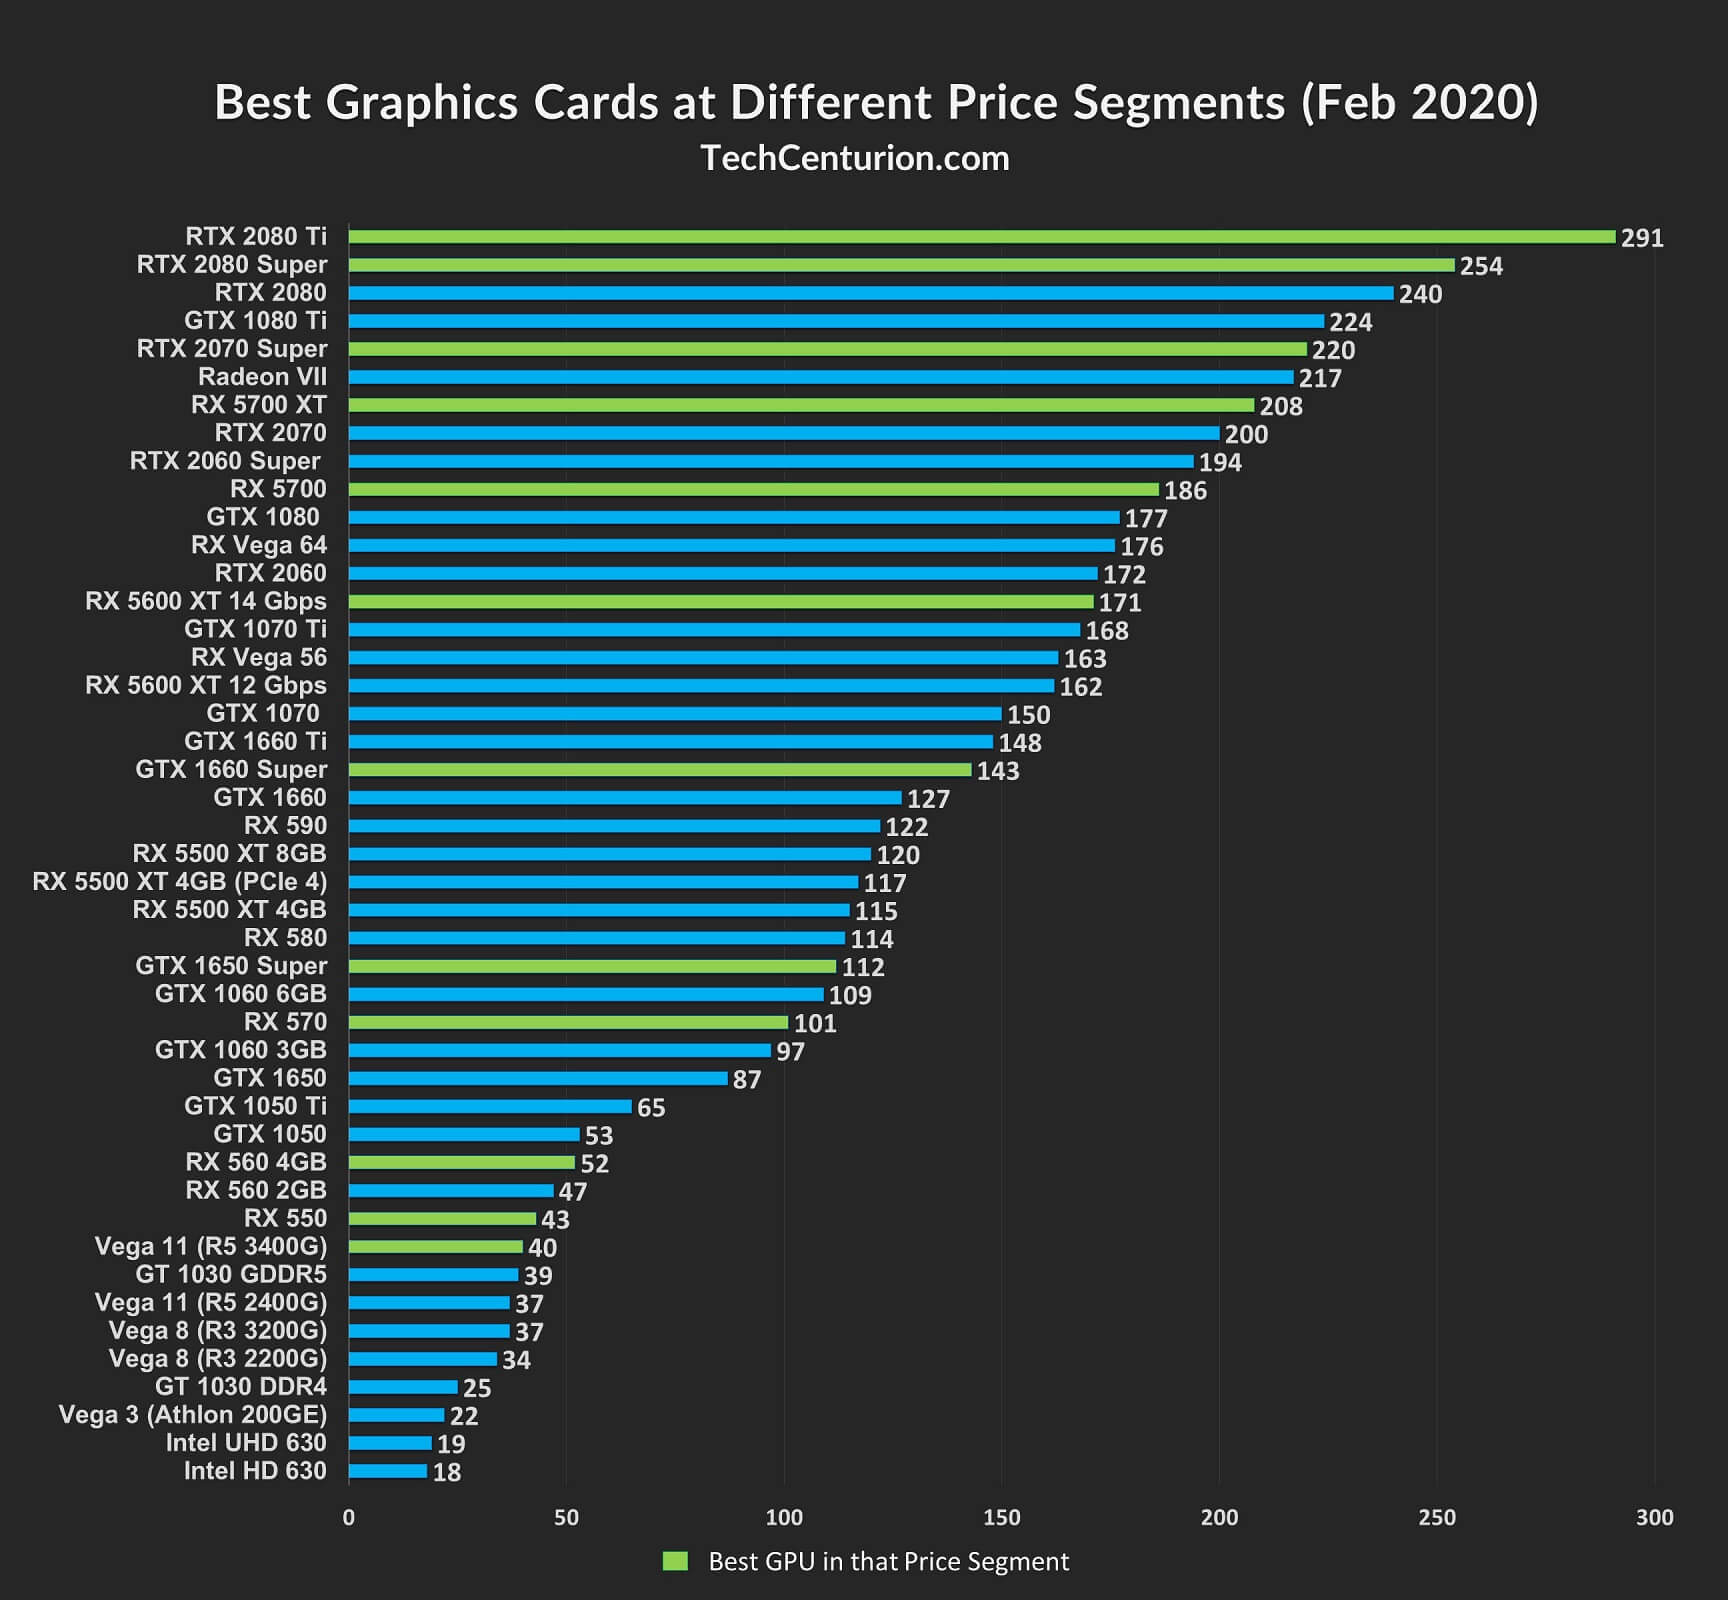 Best Graphics Card at Each Price Segment